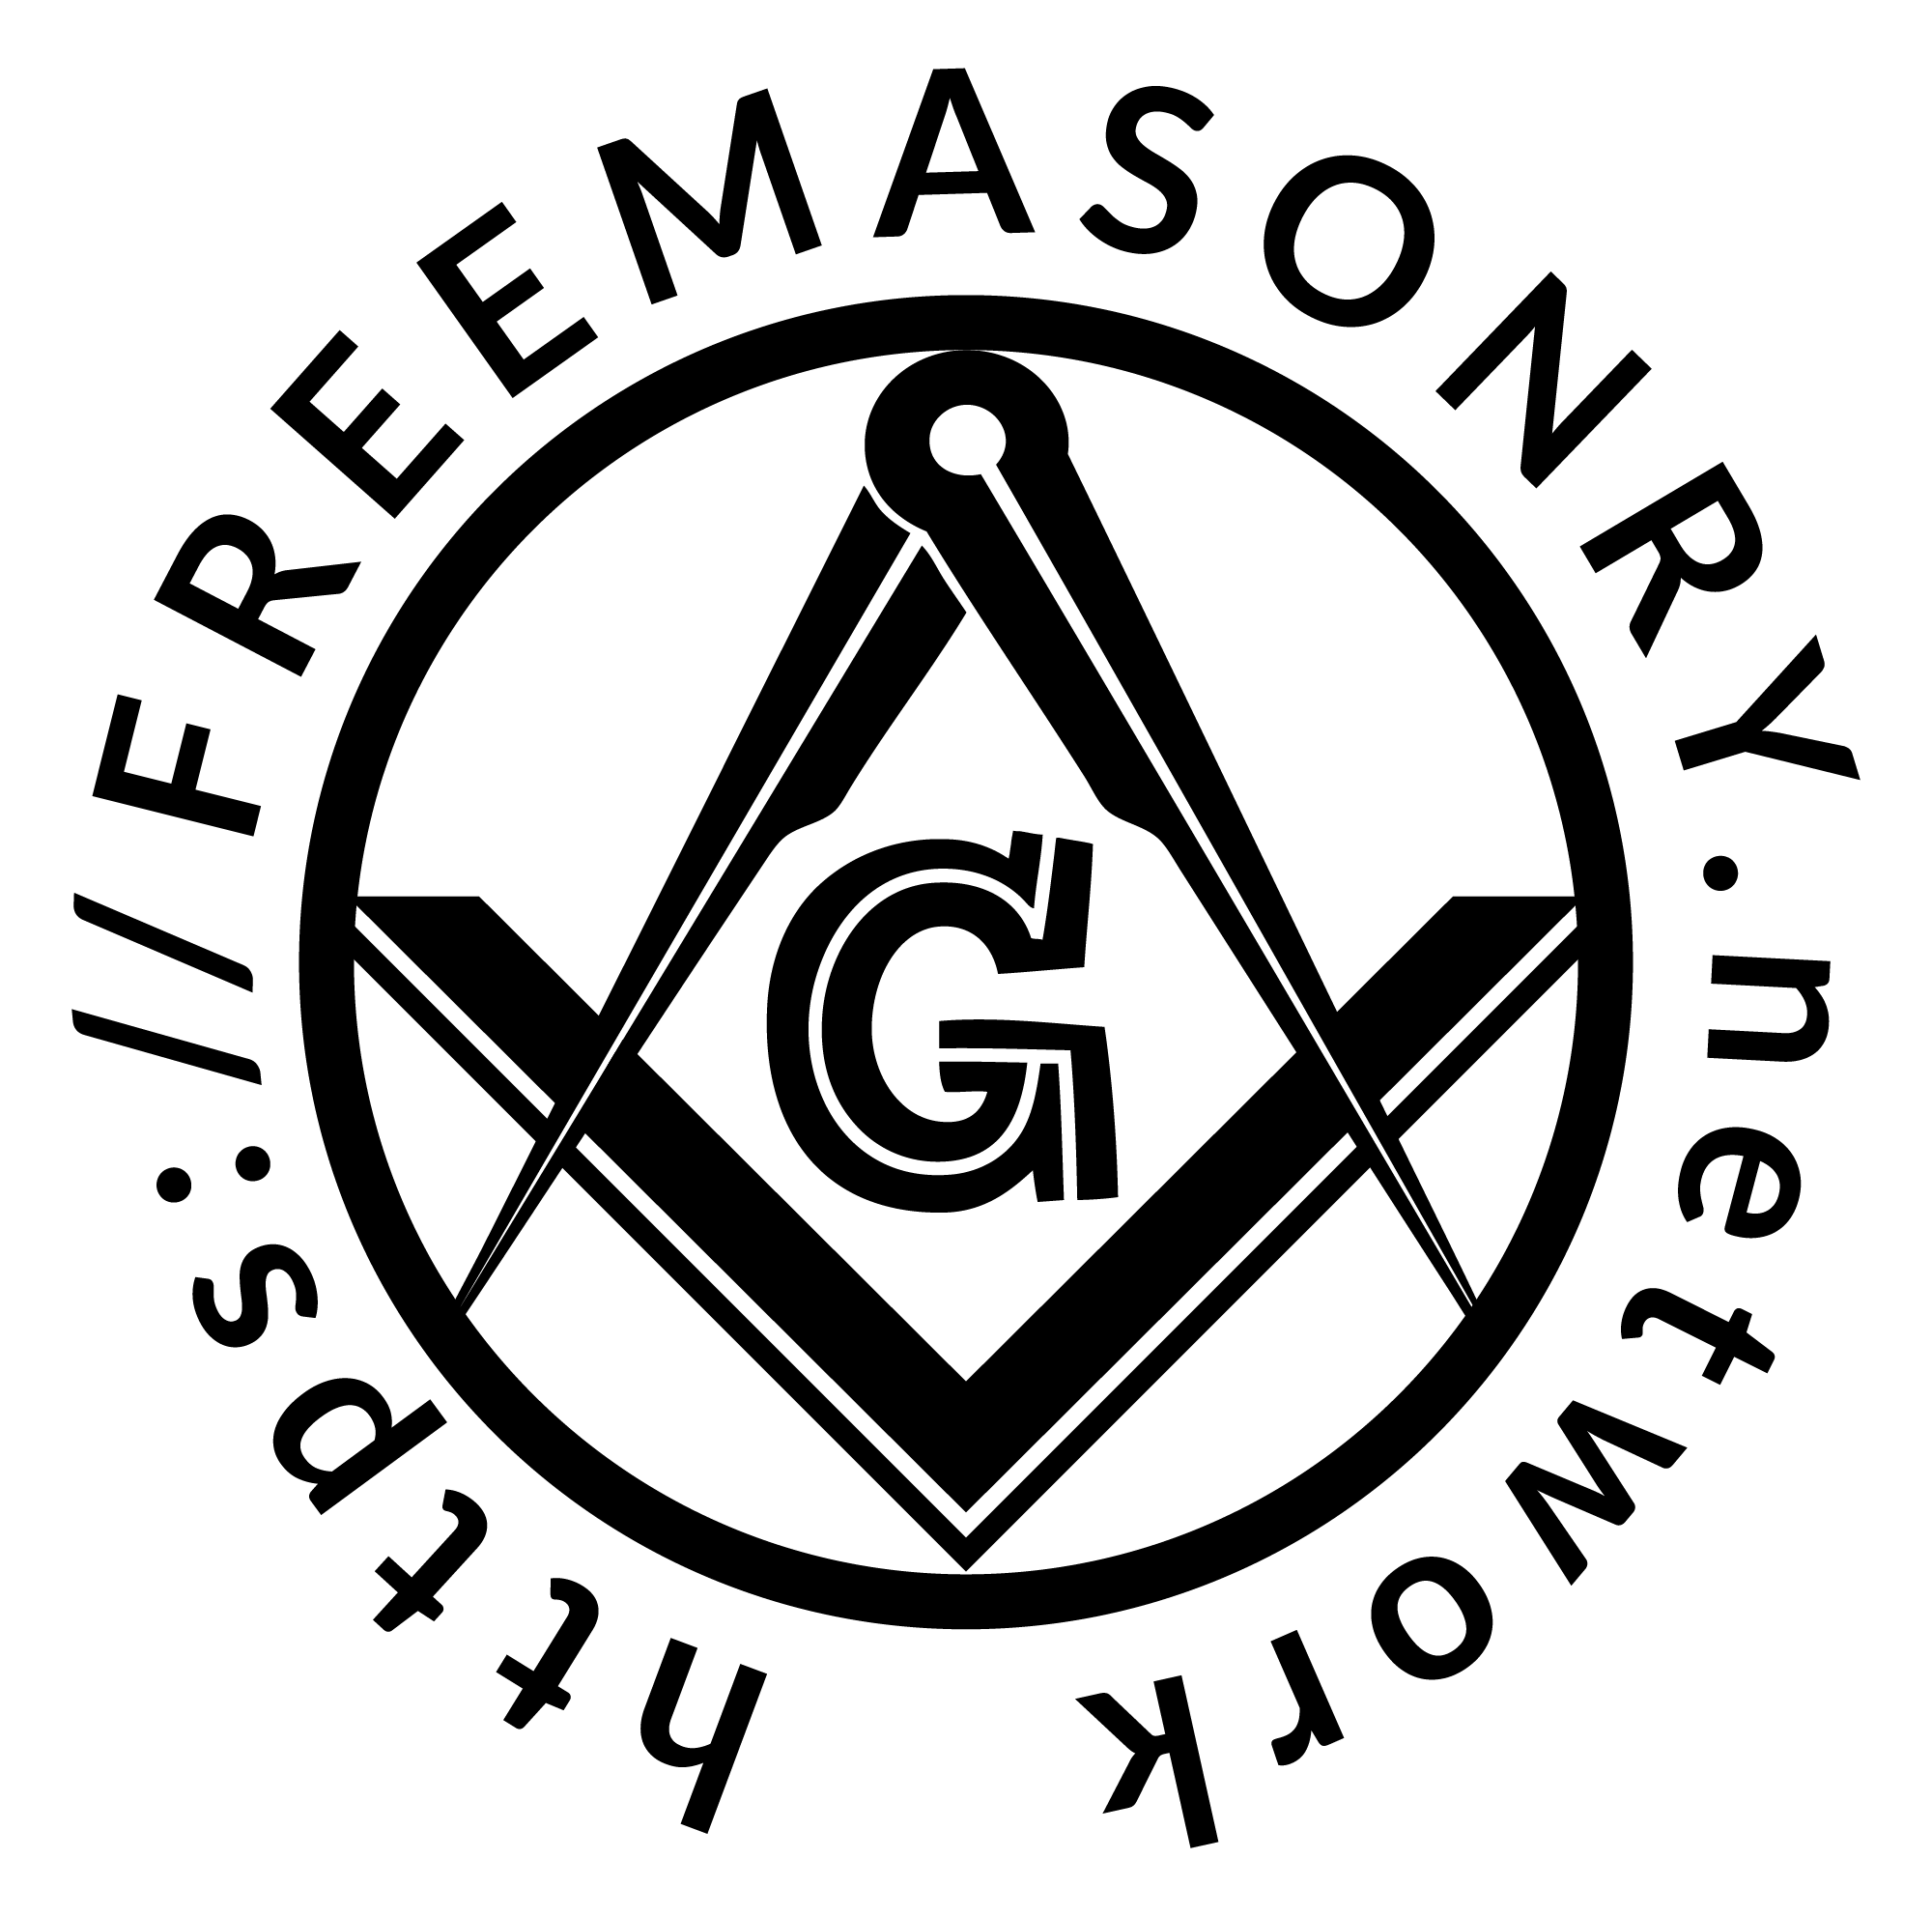 FREEMASONRY AND KABBALAH